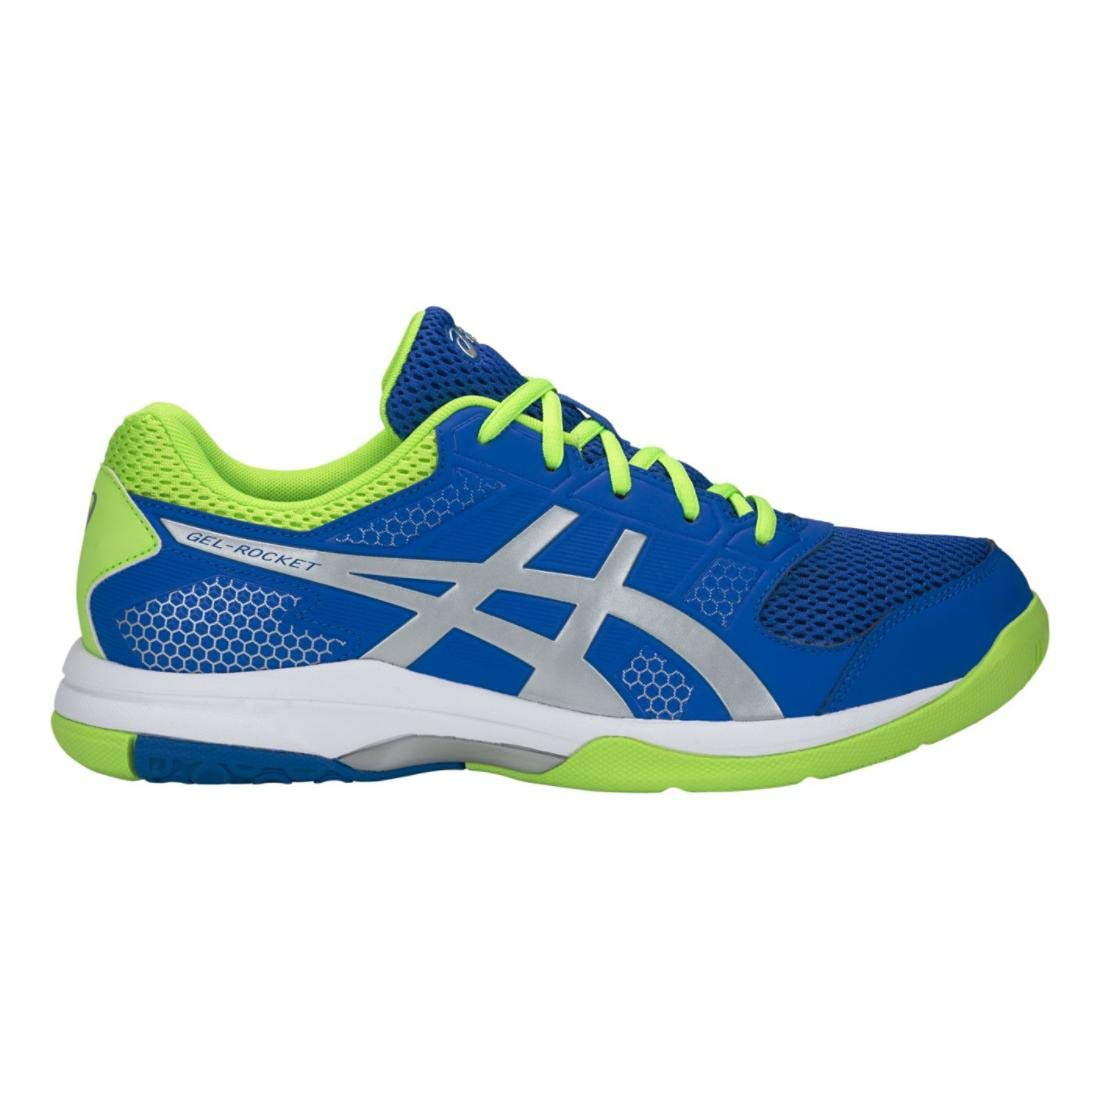 ASICS Men's Gel-Rocket 8, Blue/Silver, 7 D by ASICS (Image #1)